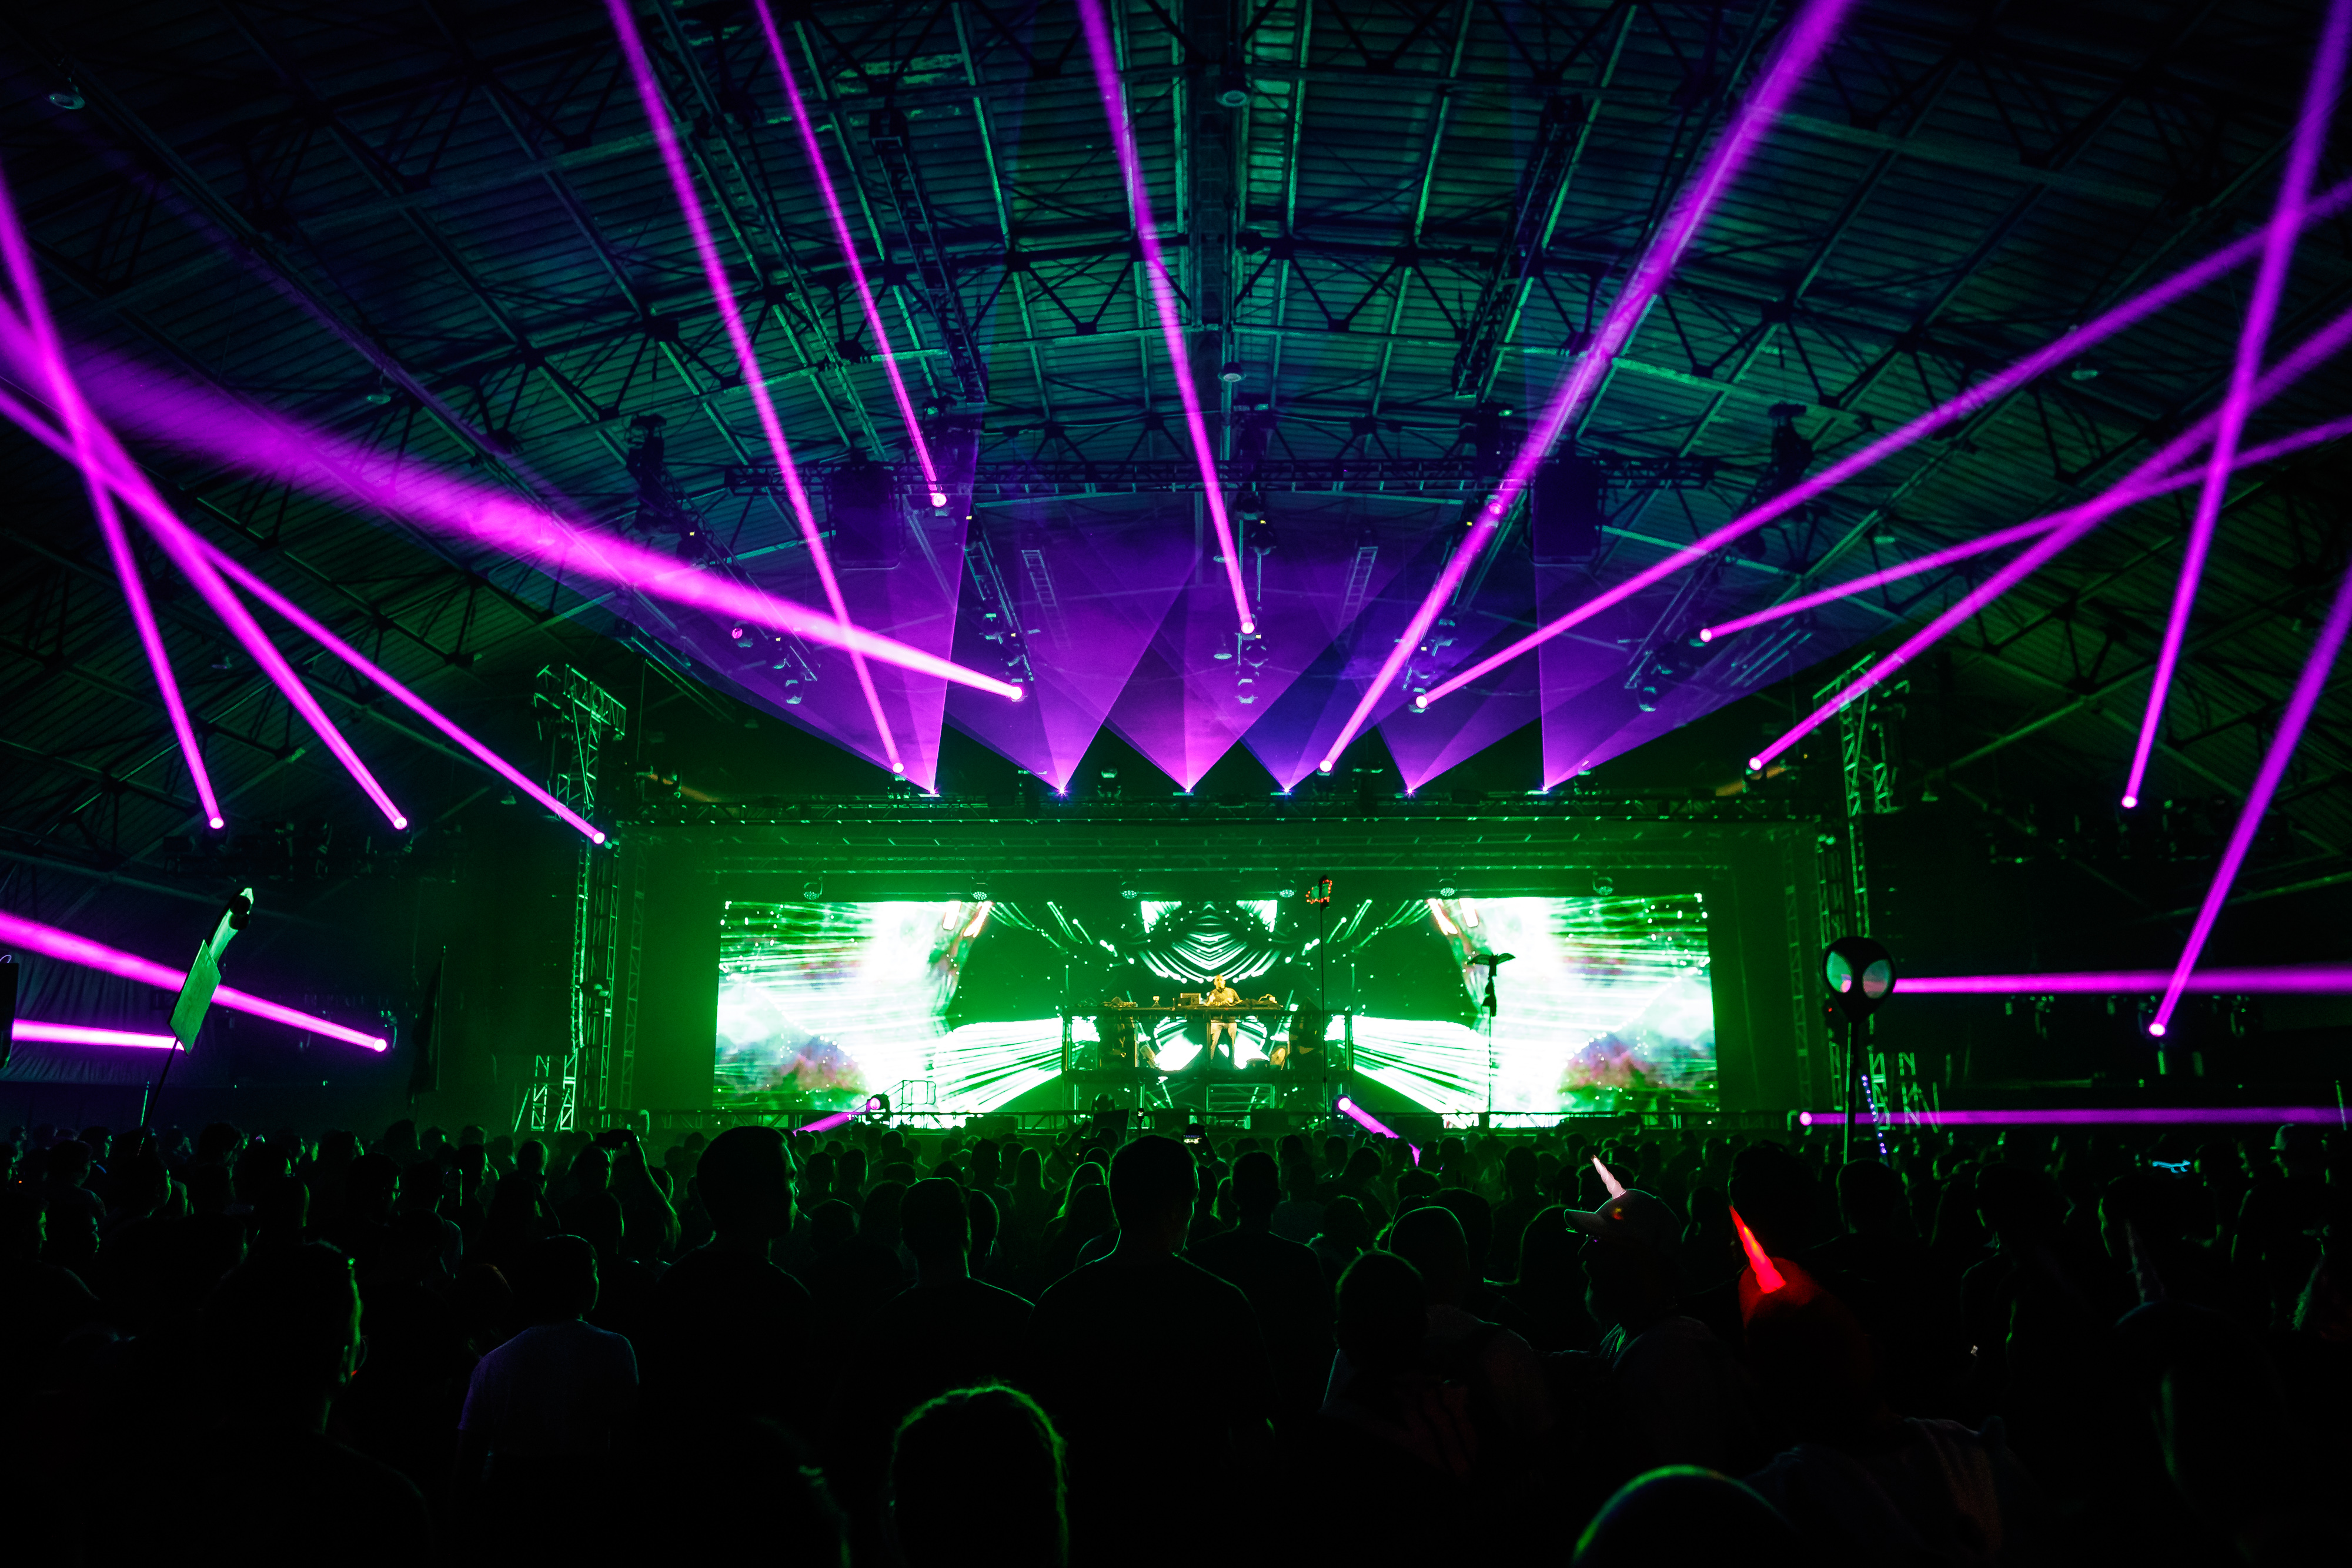 Purple lasers and video effects